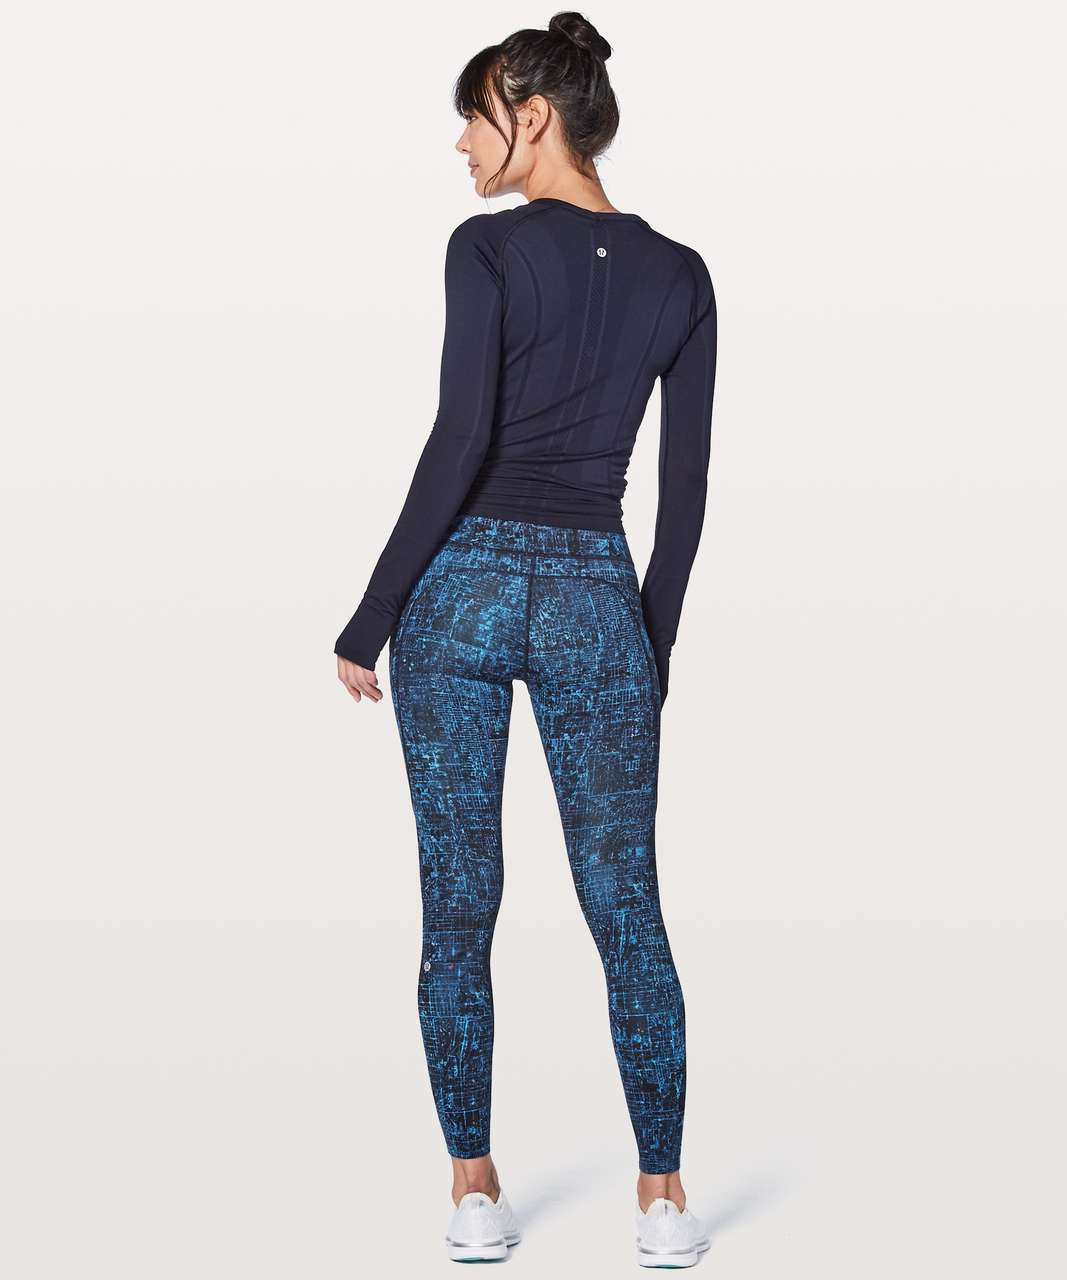 "Lululemon Fast & Free 7/8 Tight II *Nulux 25"" - City Lights Multi Black"